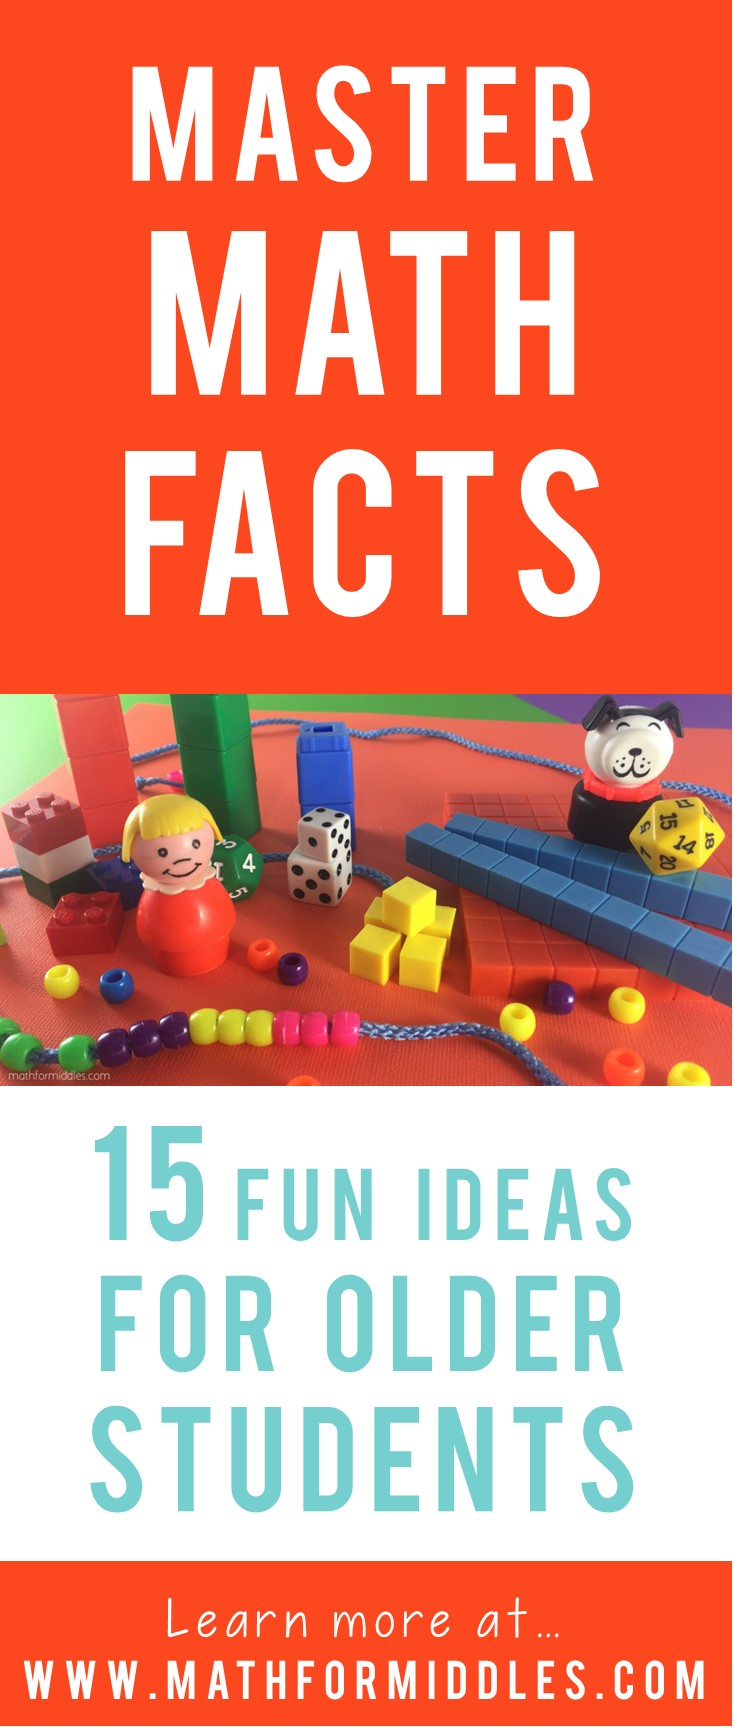 15 Fun Ways to Master Math Facts in the Middle School Years